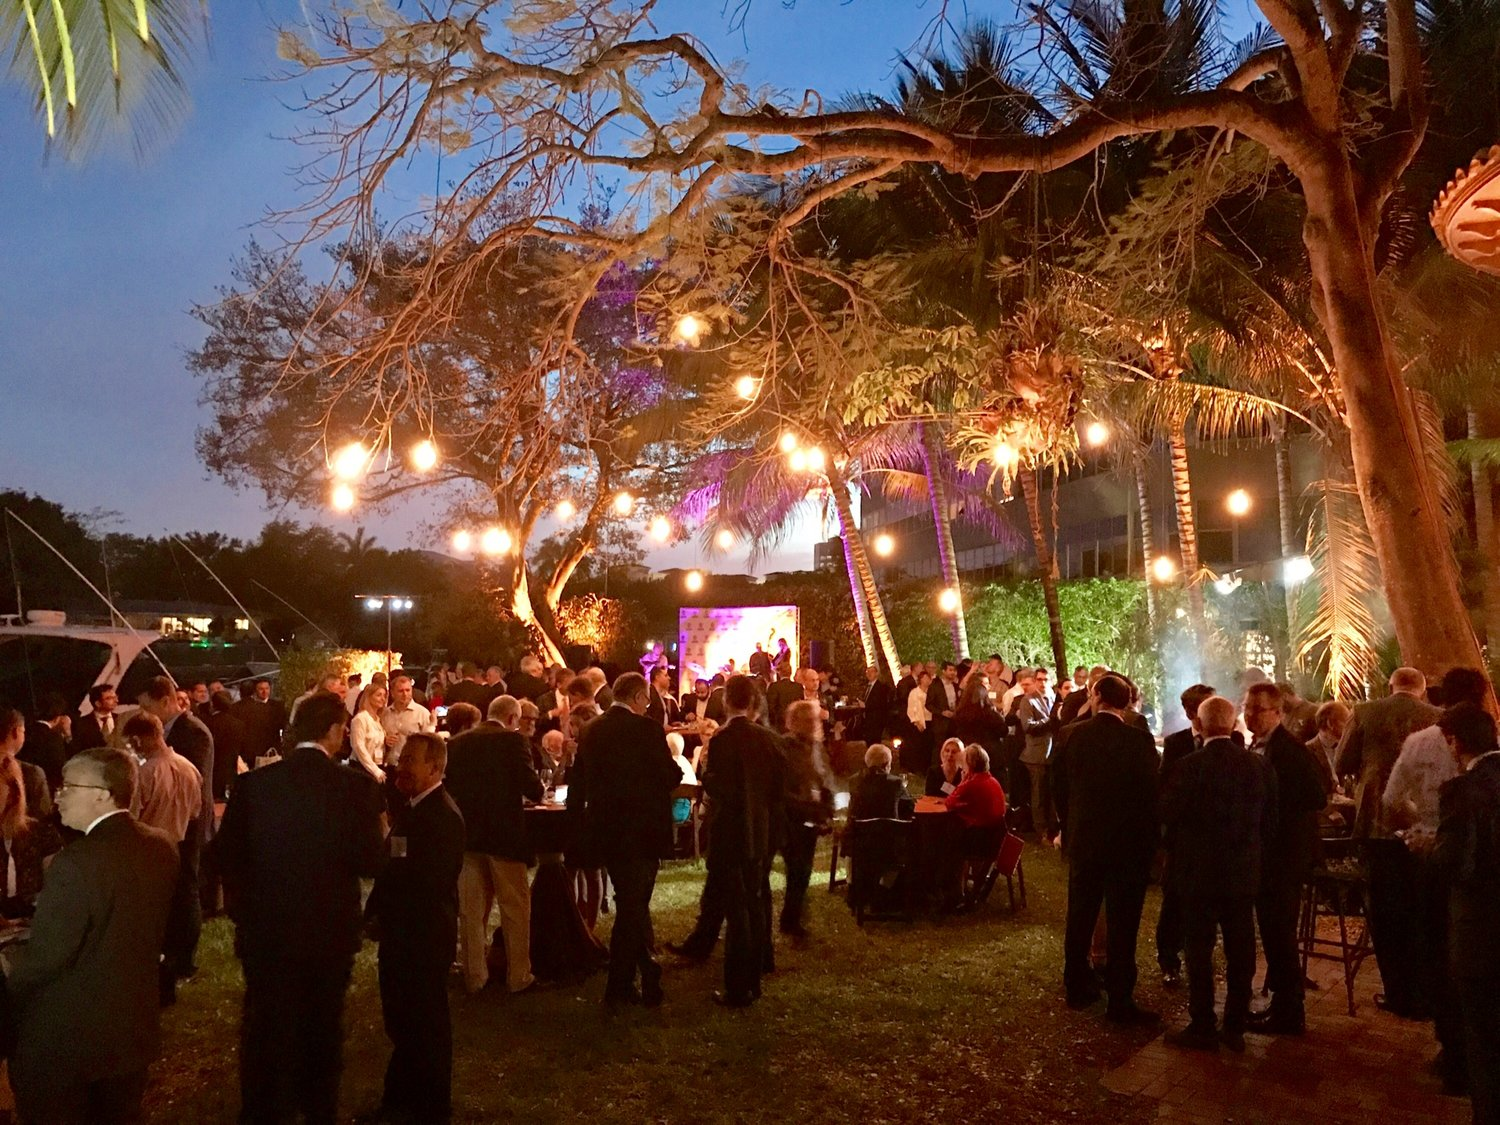 Corporate Event South Florida Luxury Catering Services.jpg